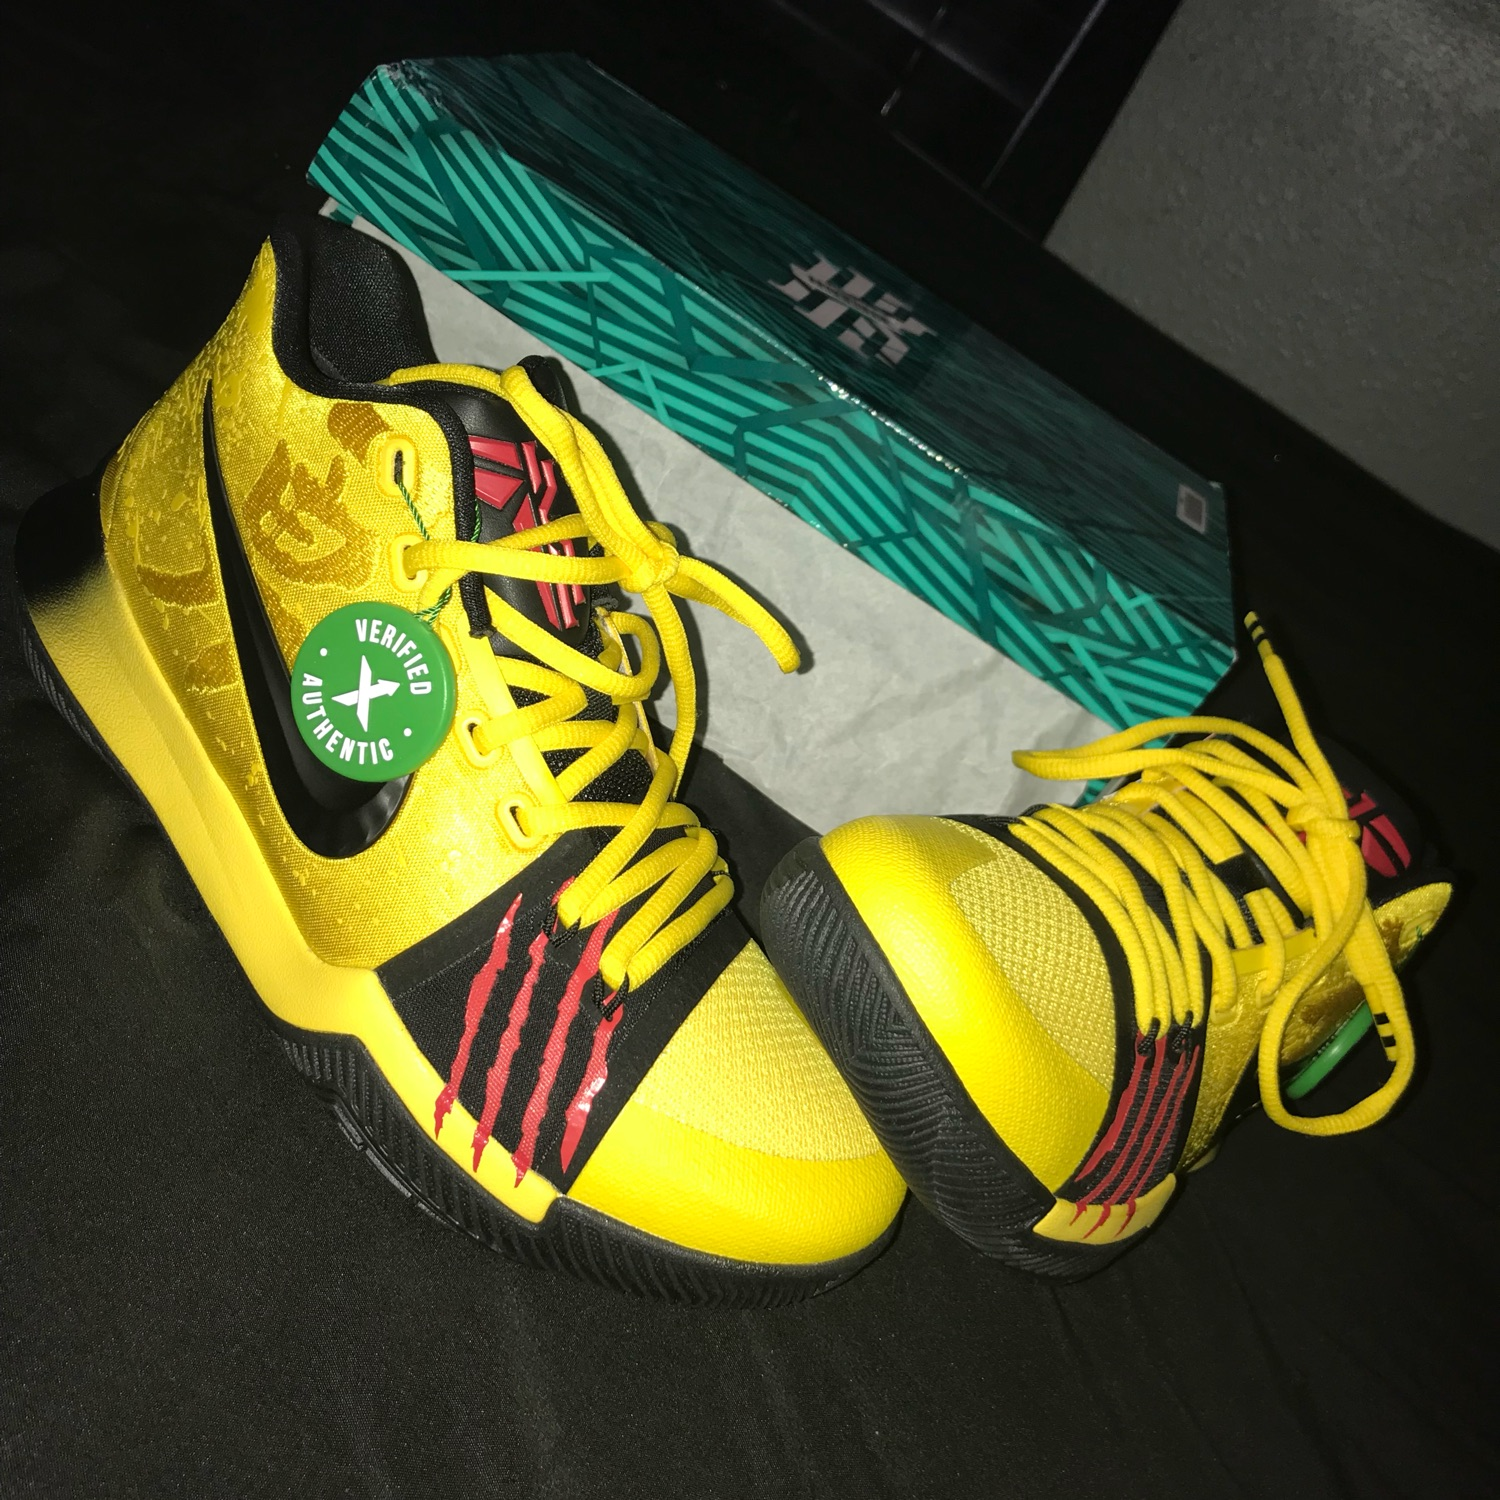 reputable site 2300a d2cd9 Kyrie 3 Mamba Mentality